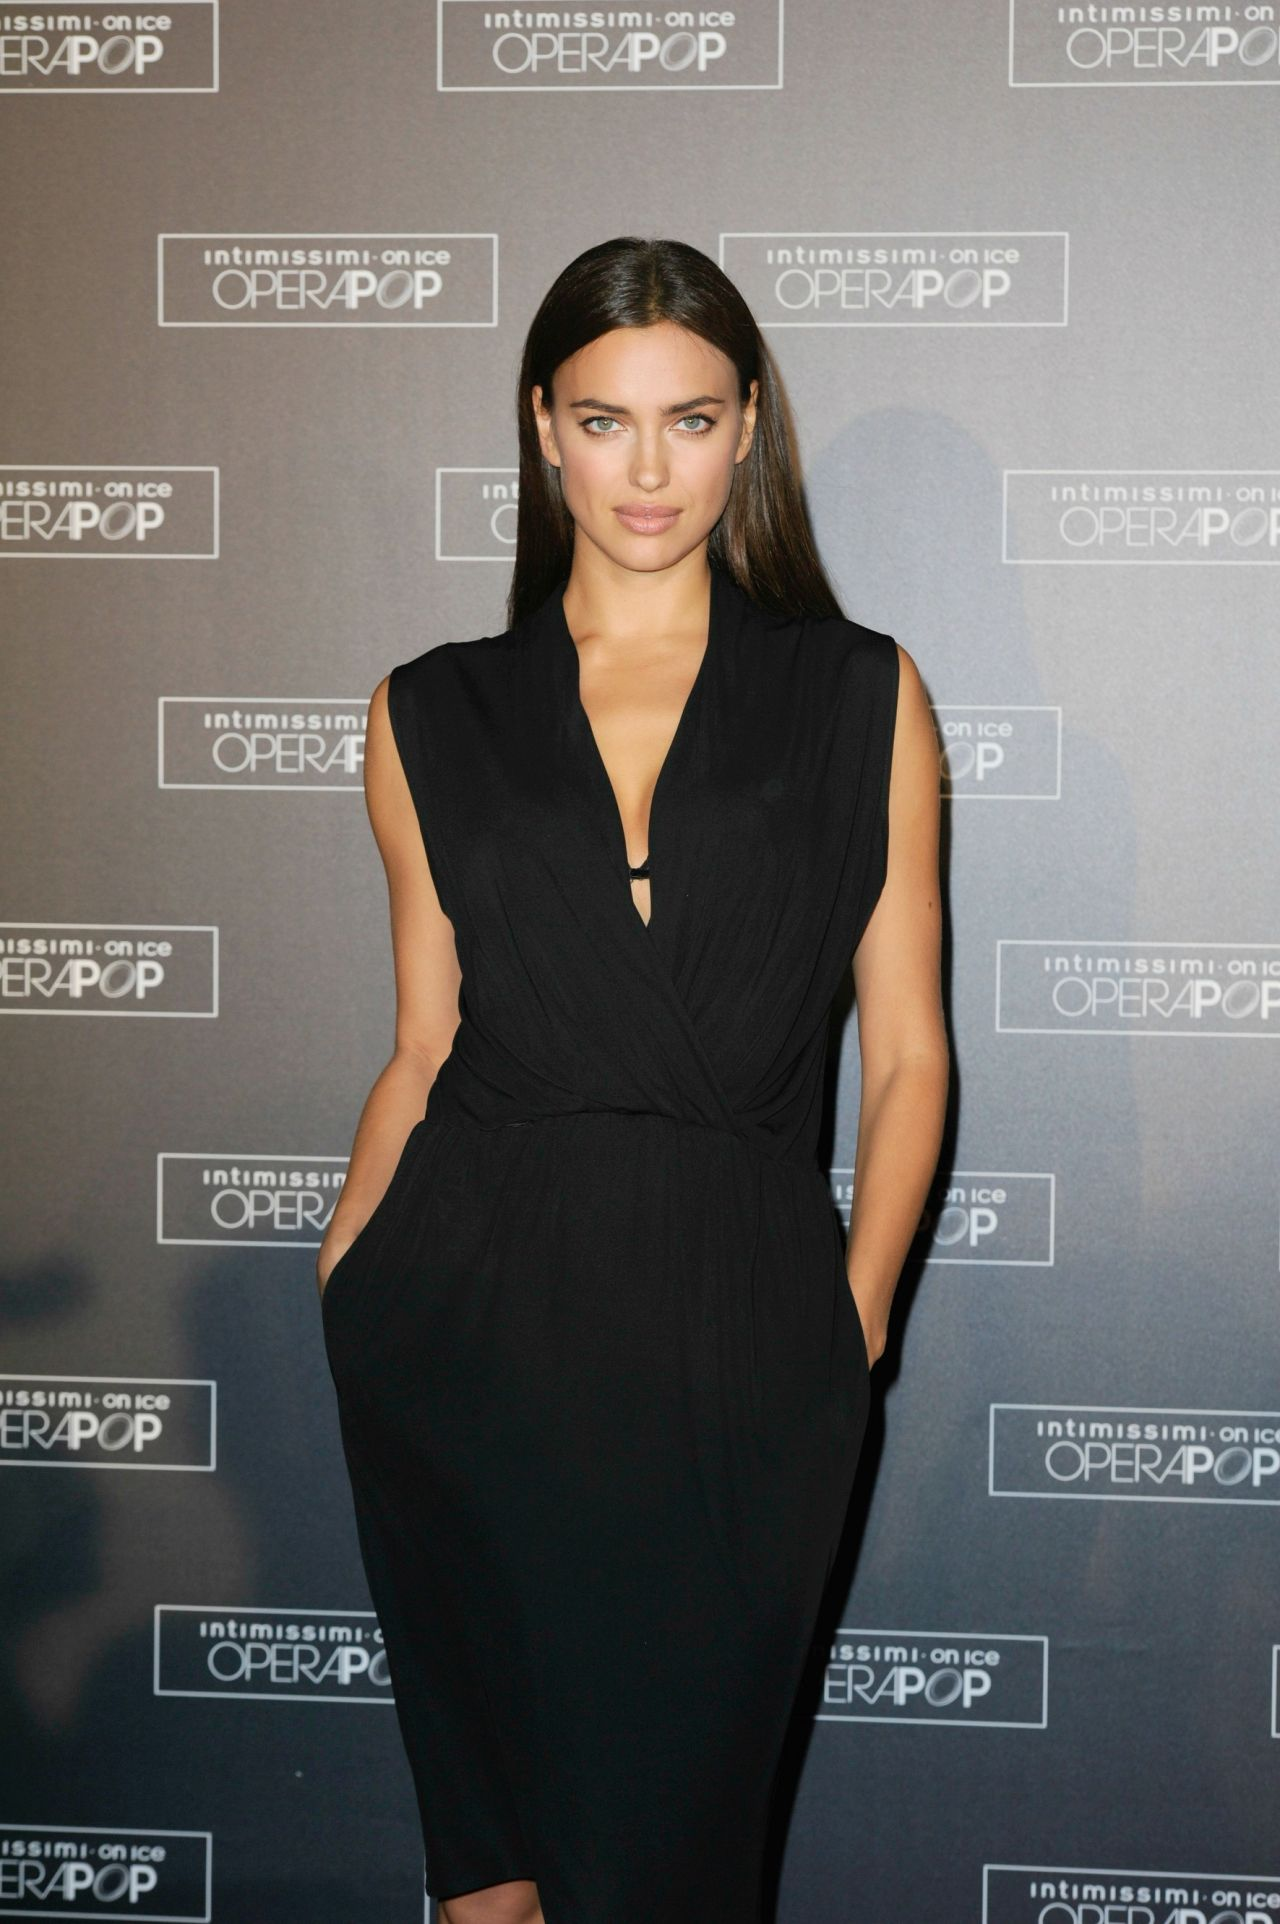 Irina Shayk - Intimissimi on Ice - OperaPop in Verona - September 2014